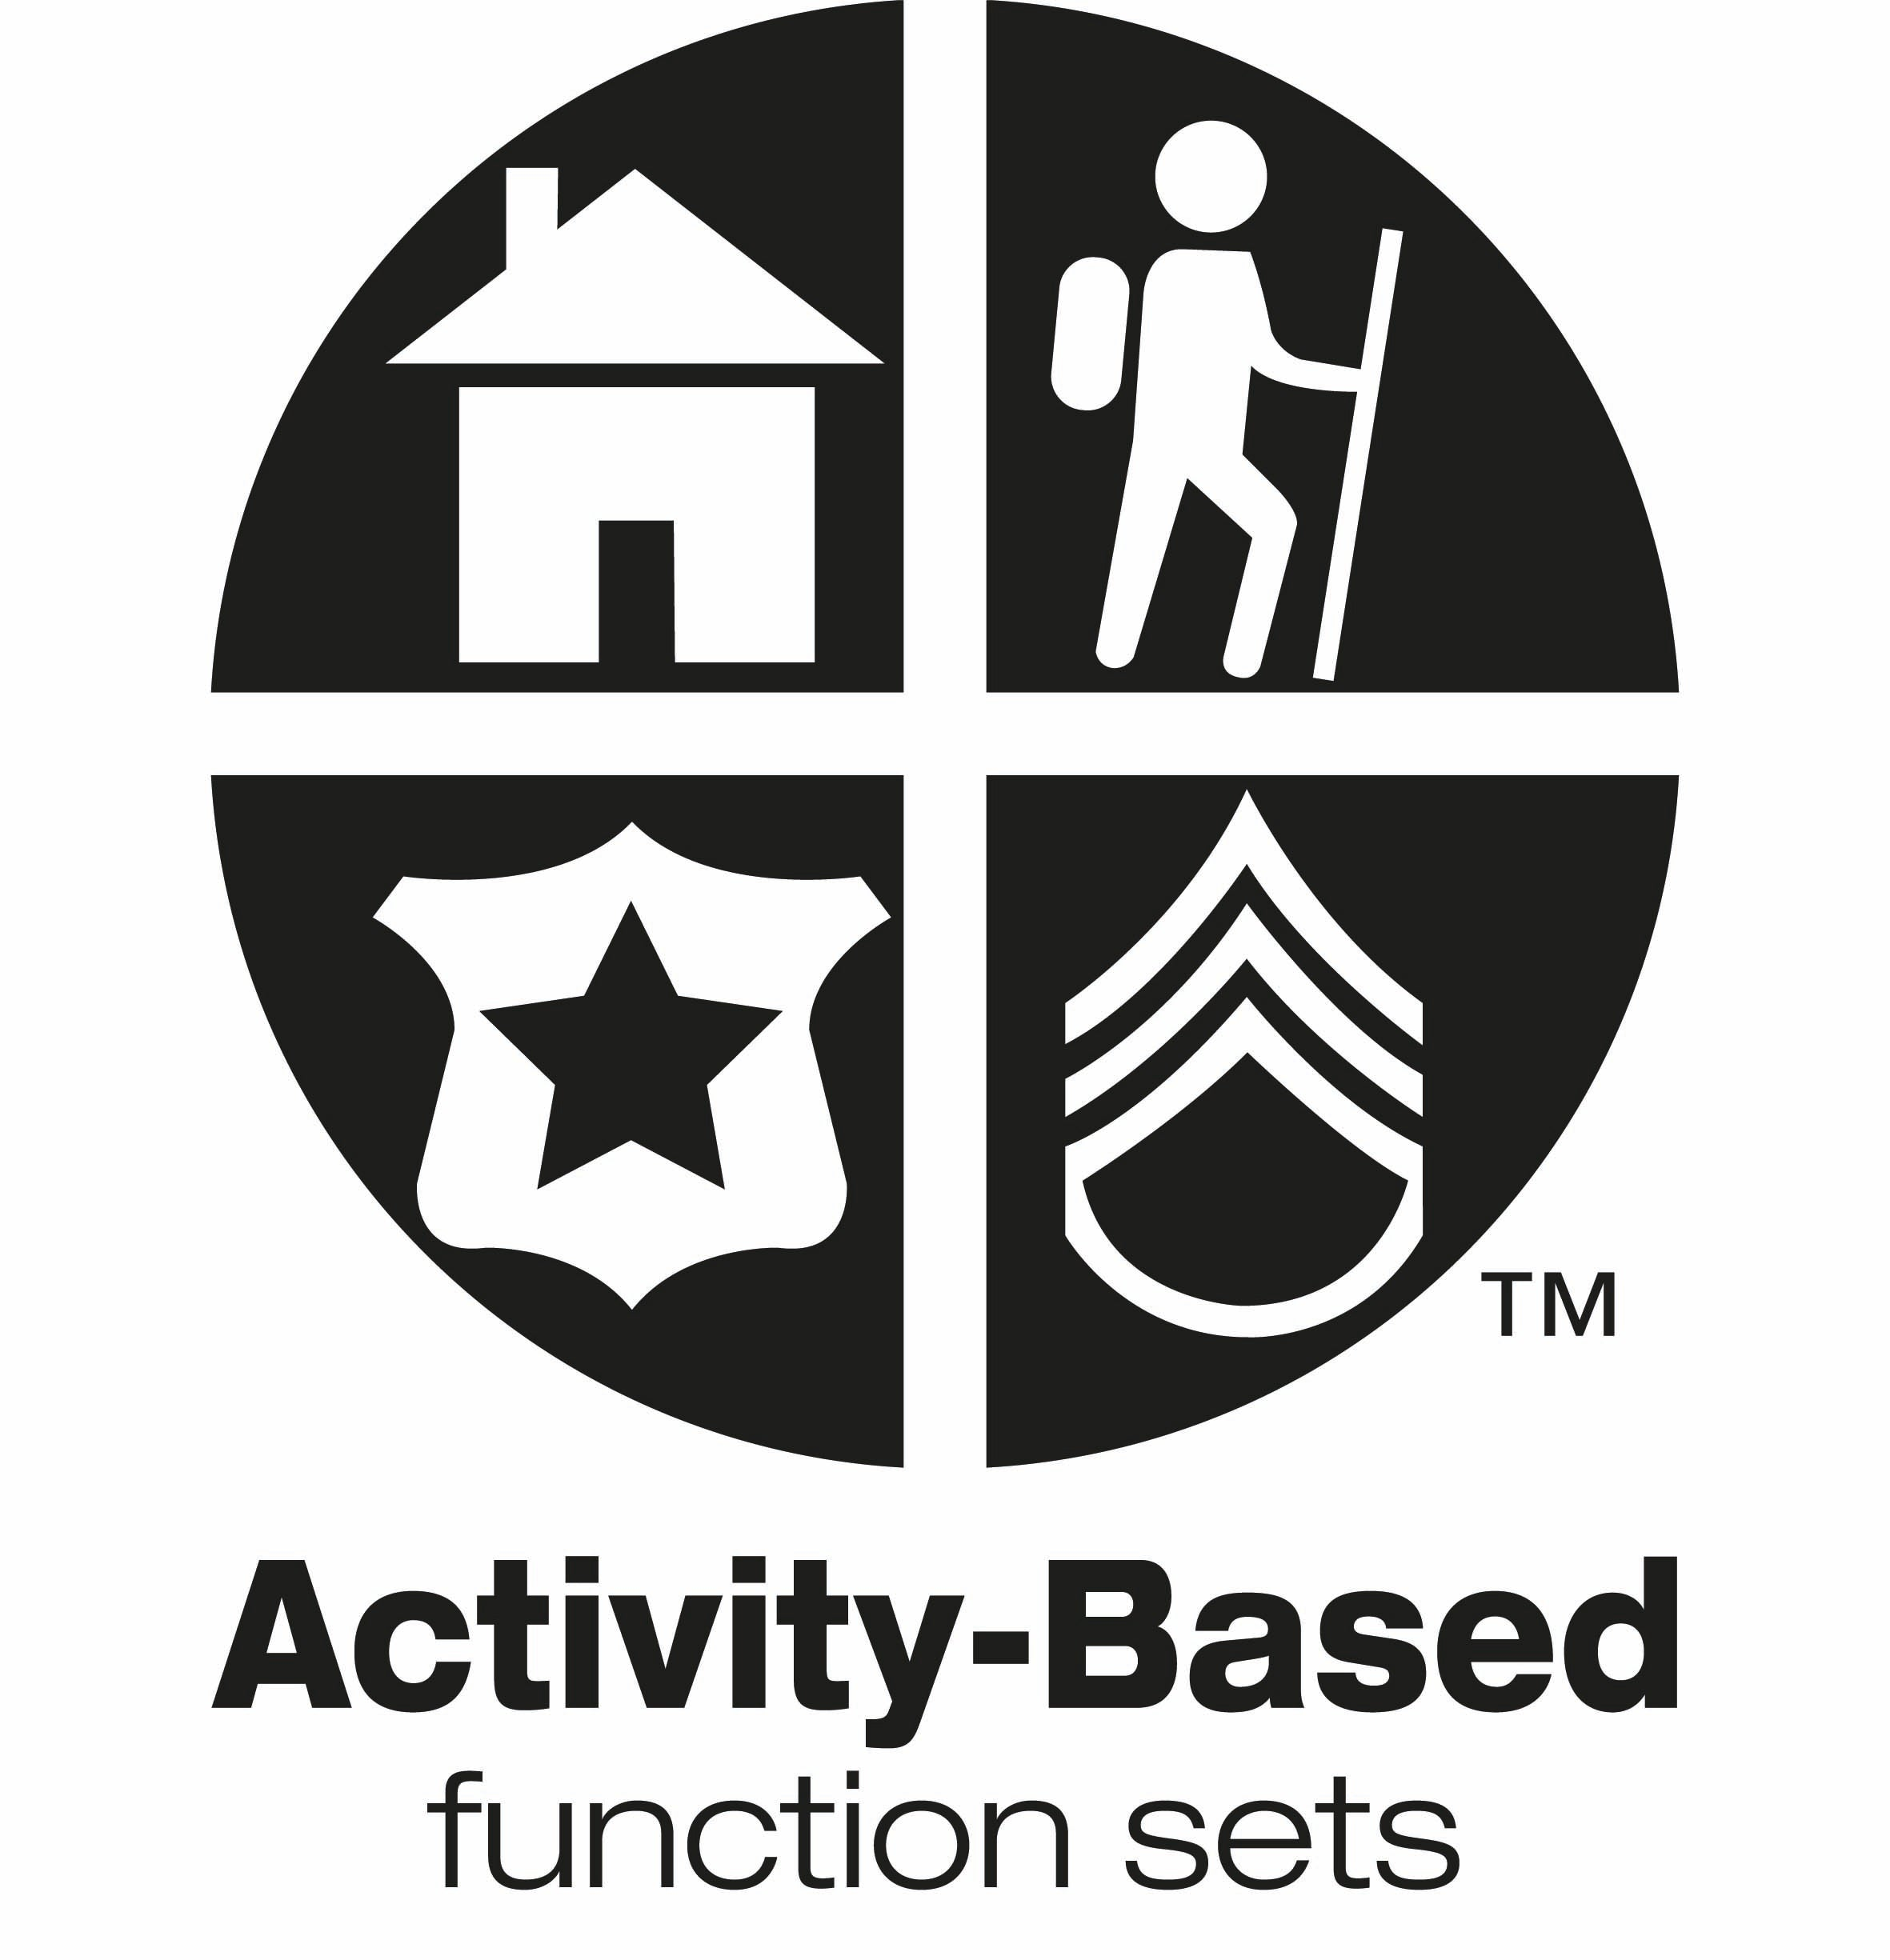 Maglite® Activity-Based function set